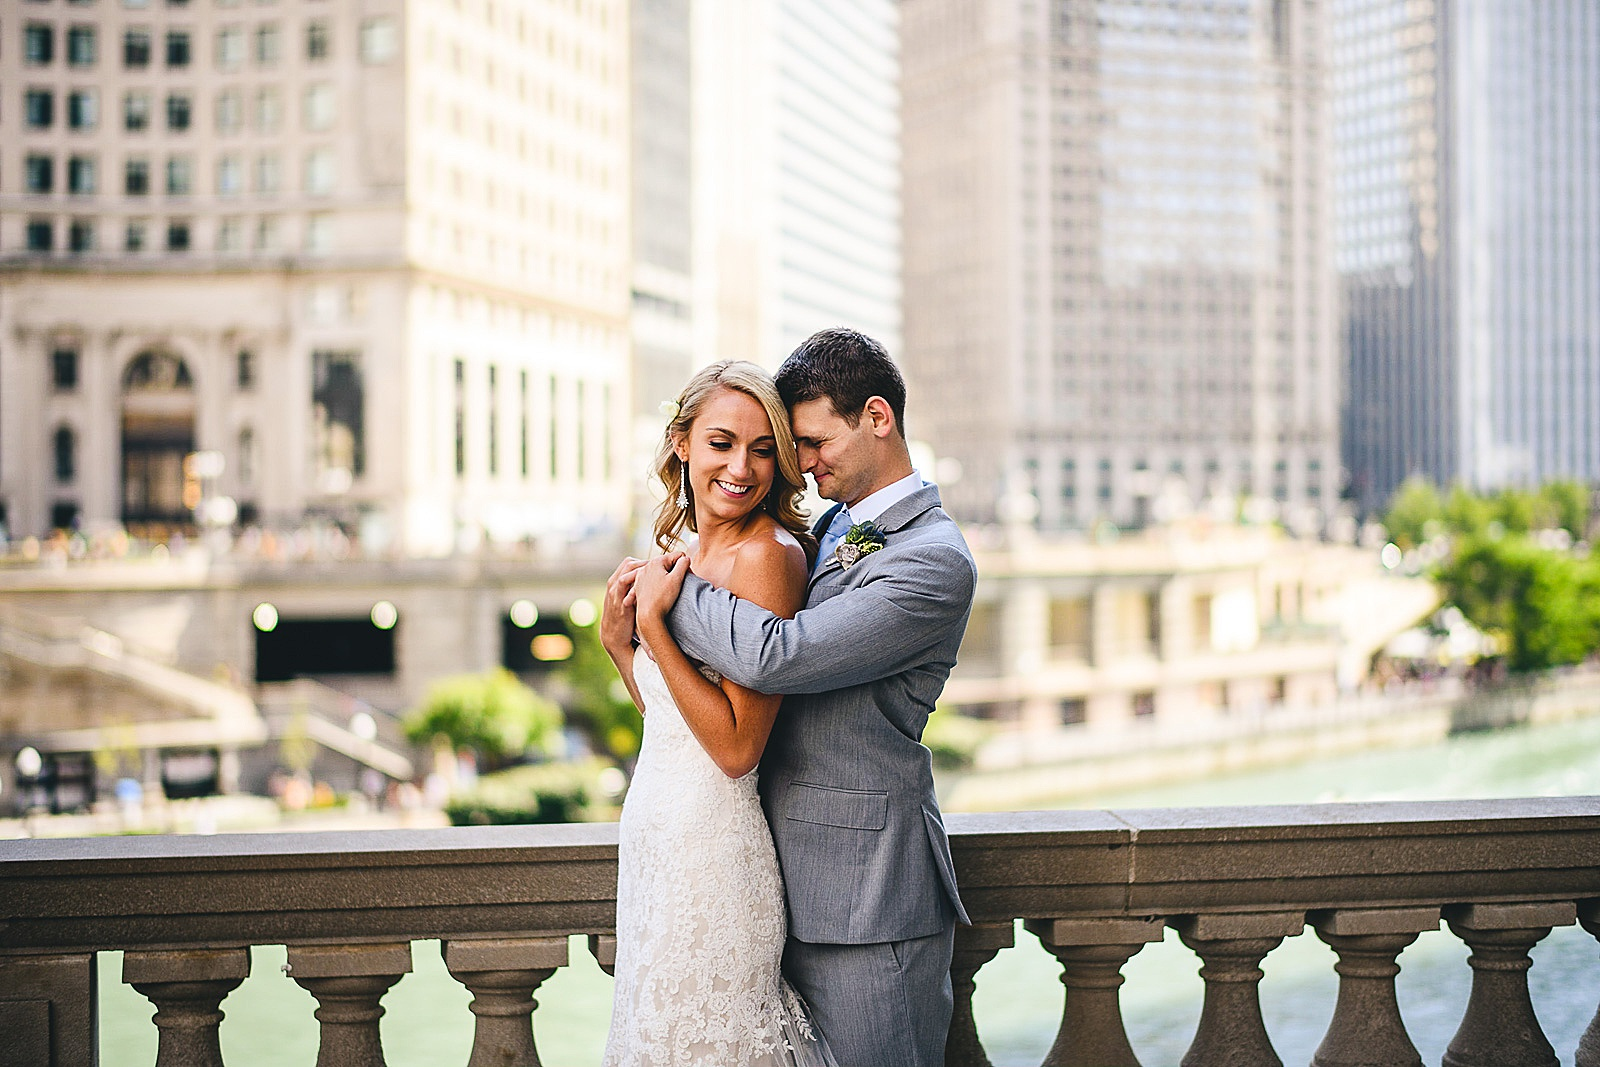 33 wrigley building wedding photos - Audrey + Jake's Beautiful Chicago Wedding at Chez